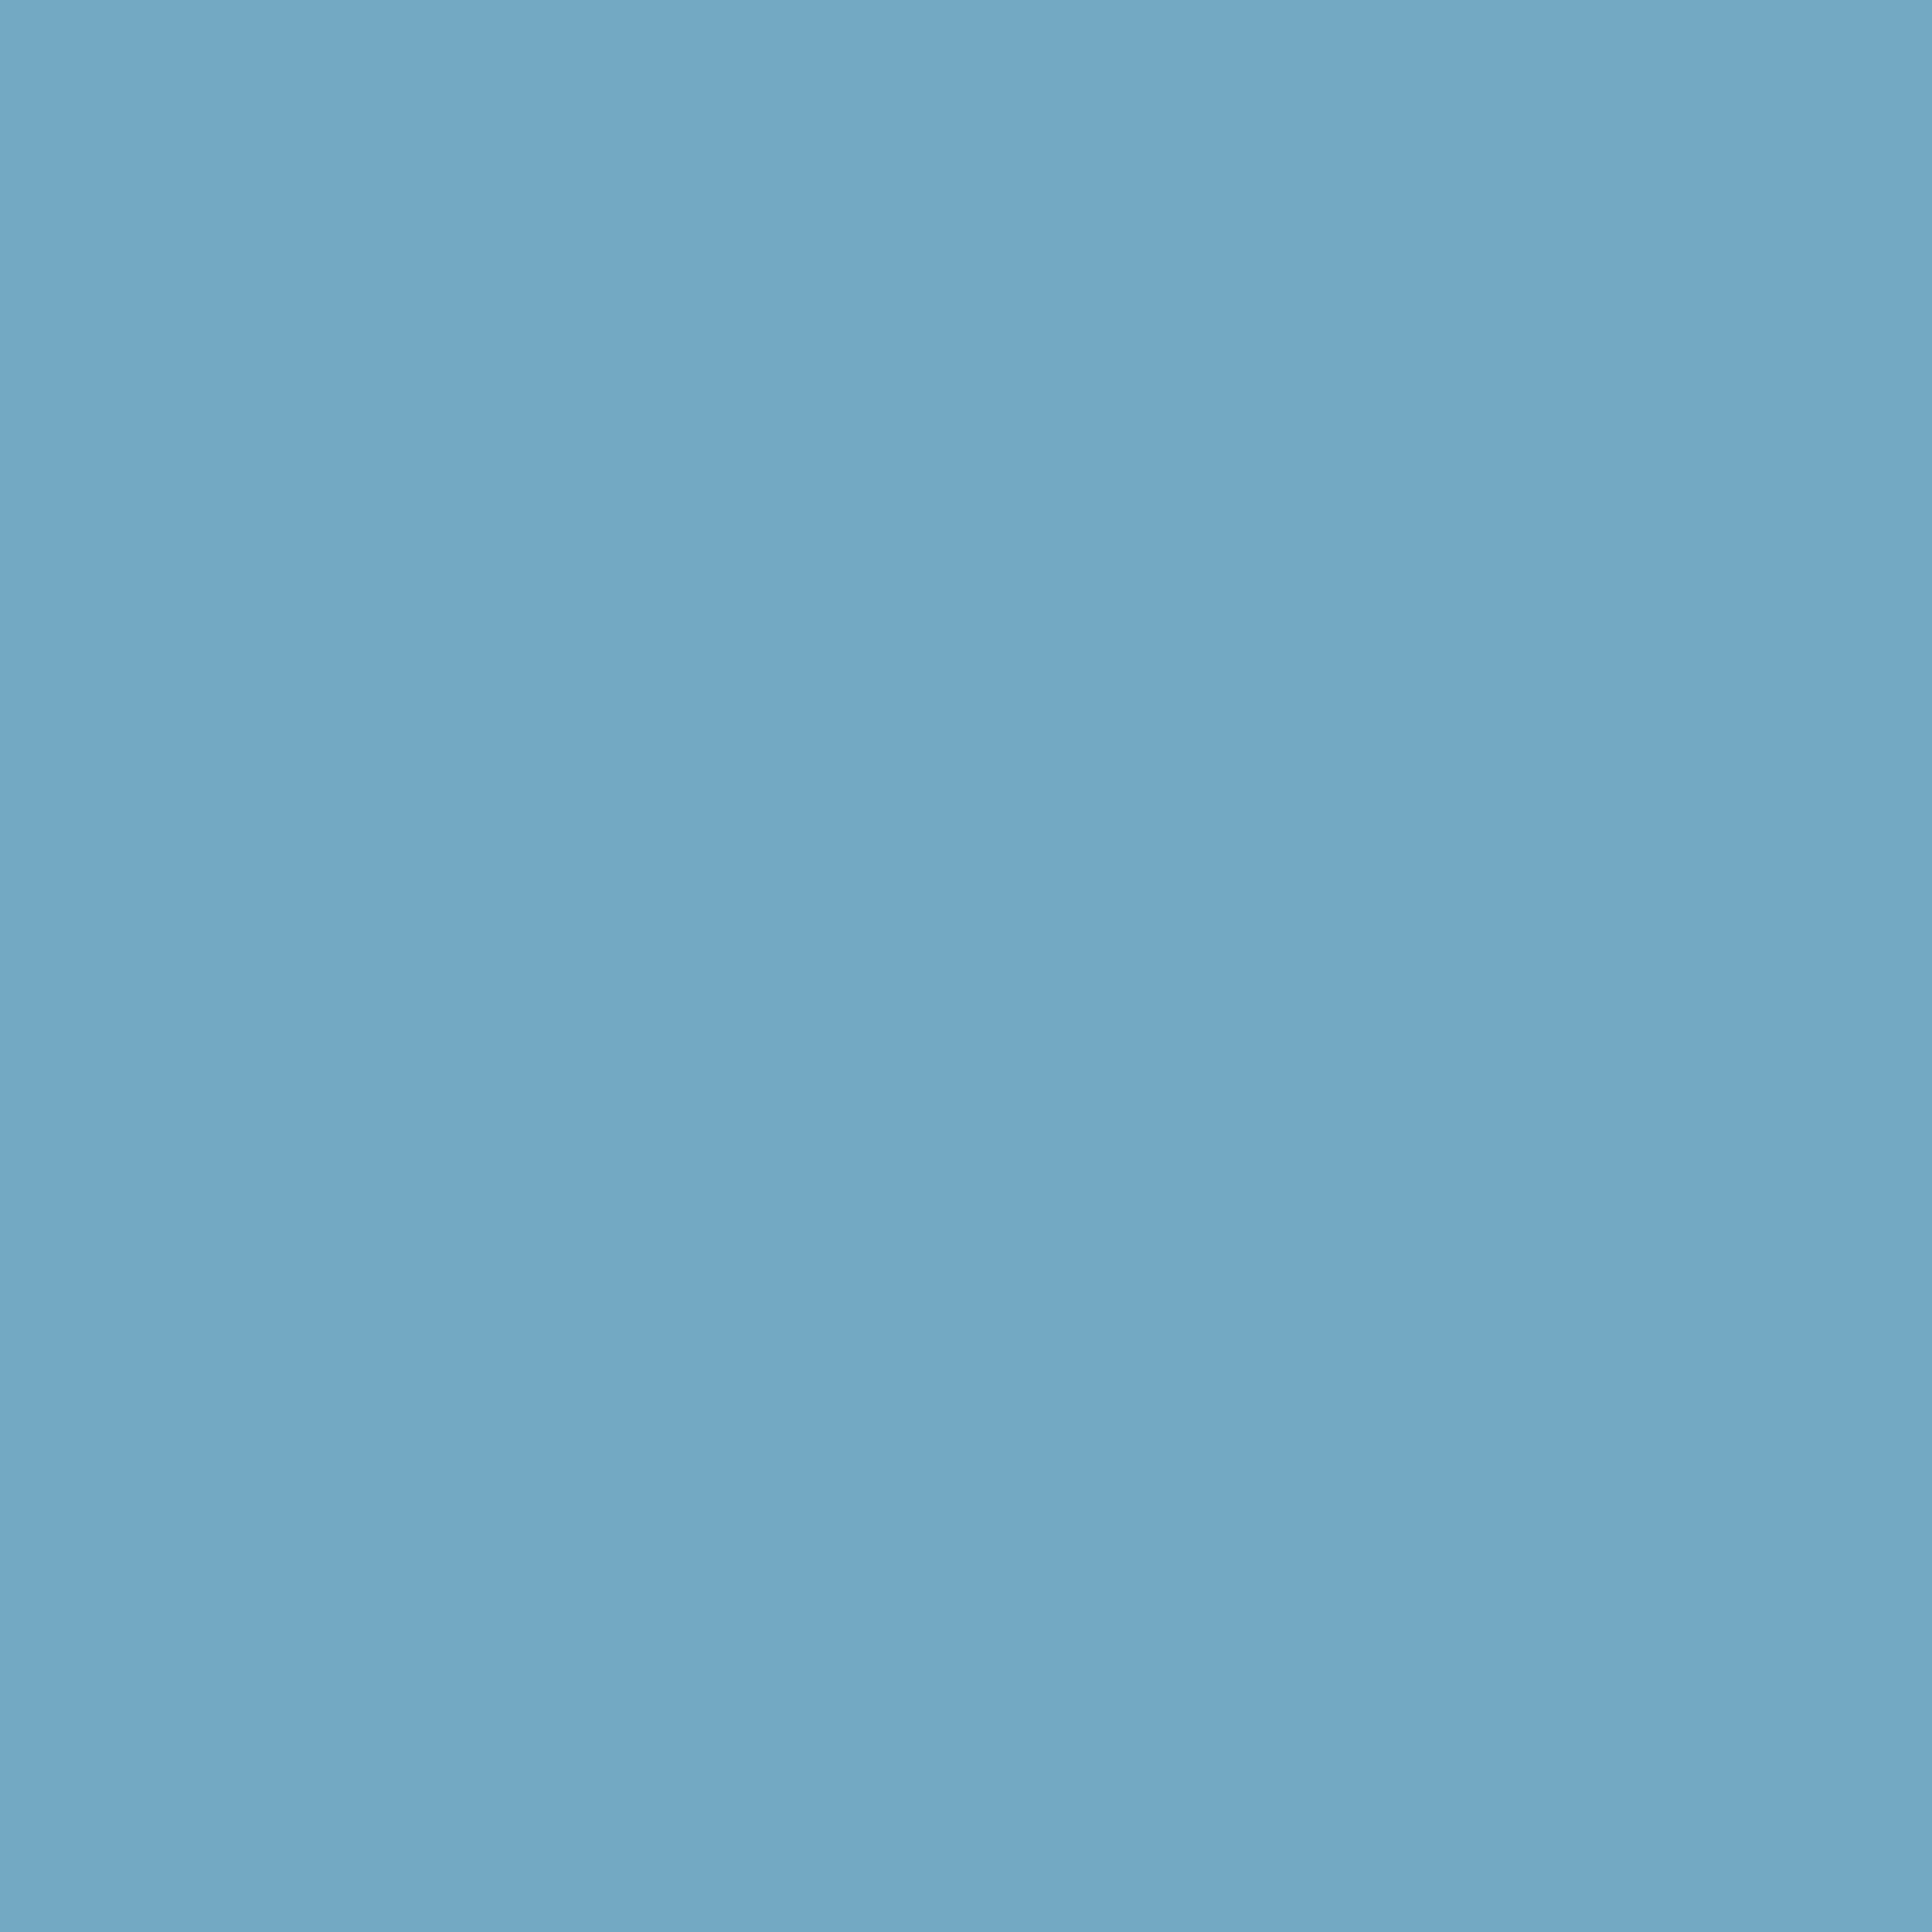 2732x2732 Moonstone Blue Solid Color Background